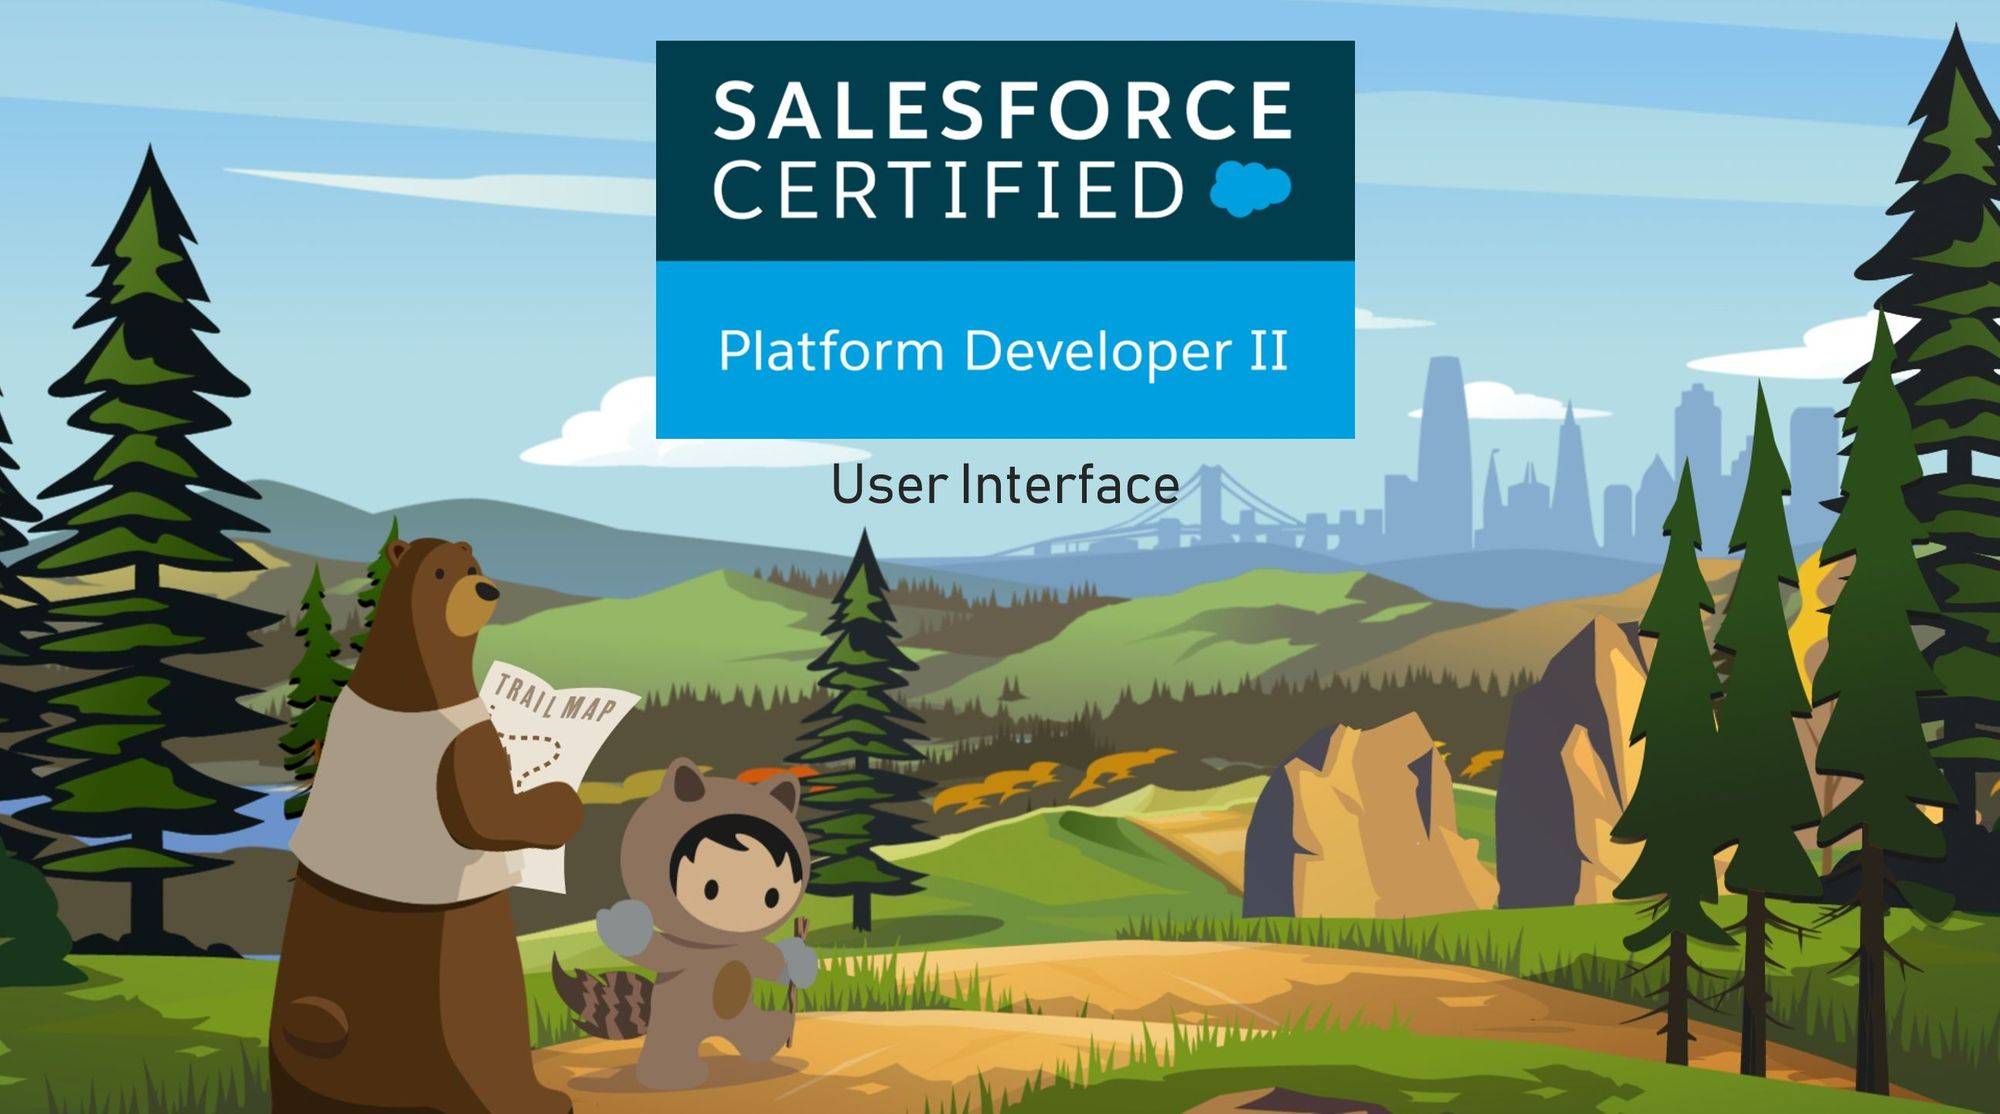 Salesforce Platform Dev II Exam Preparation: User Interface